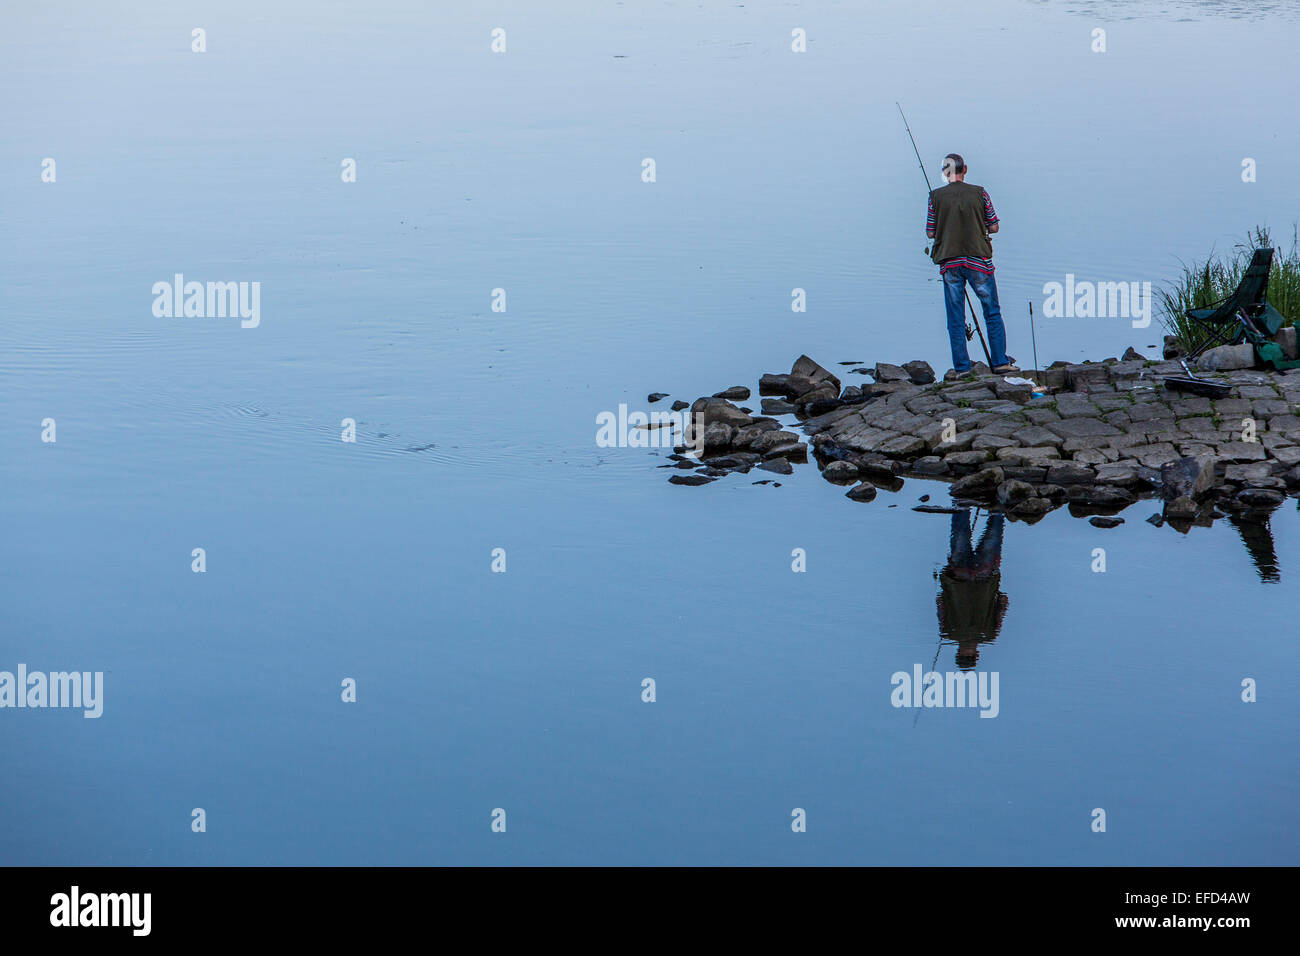 Angler fishing, river Ruhr, Essen, Germany - Stock Image